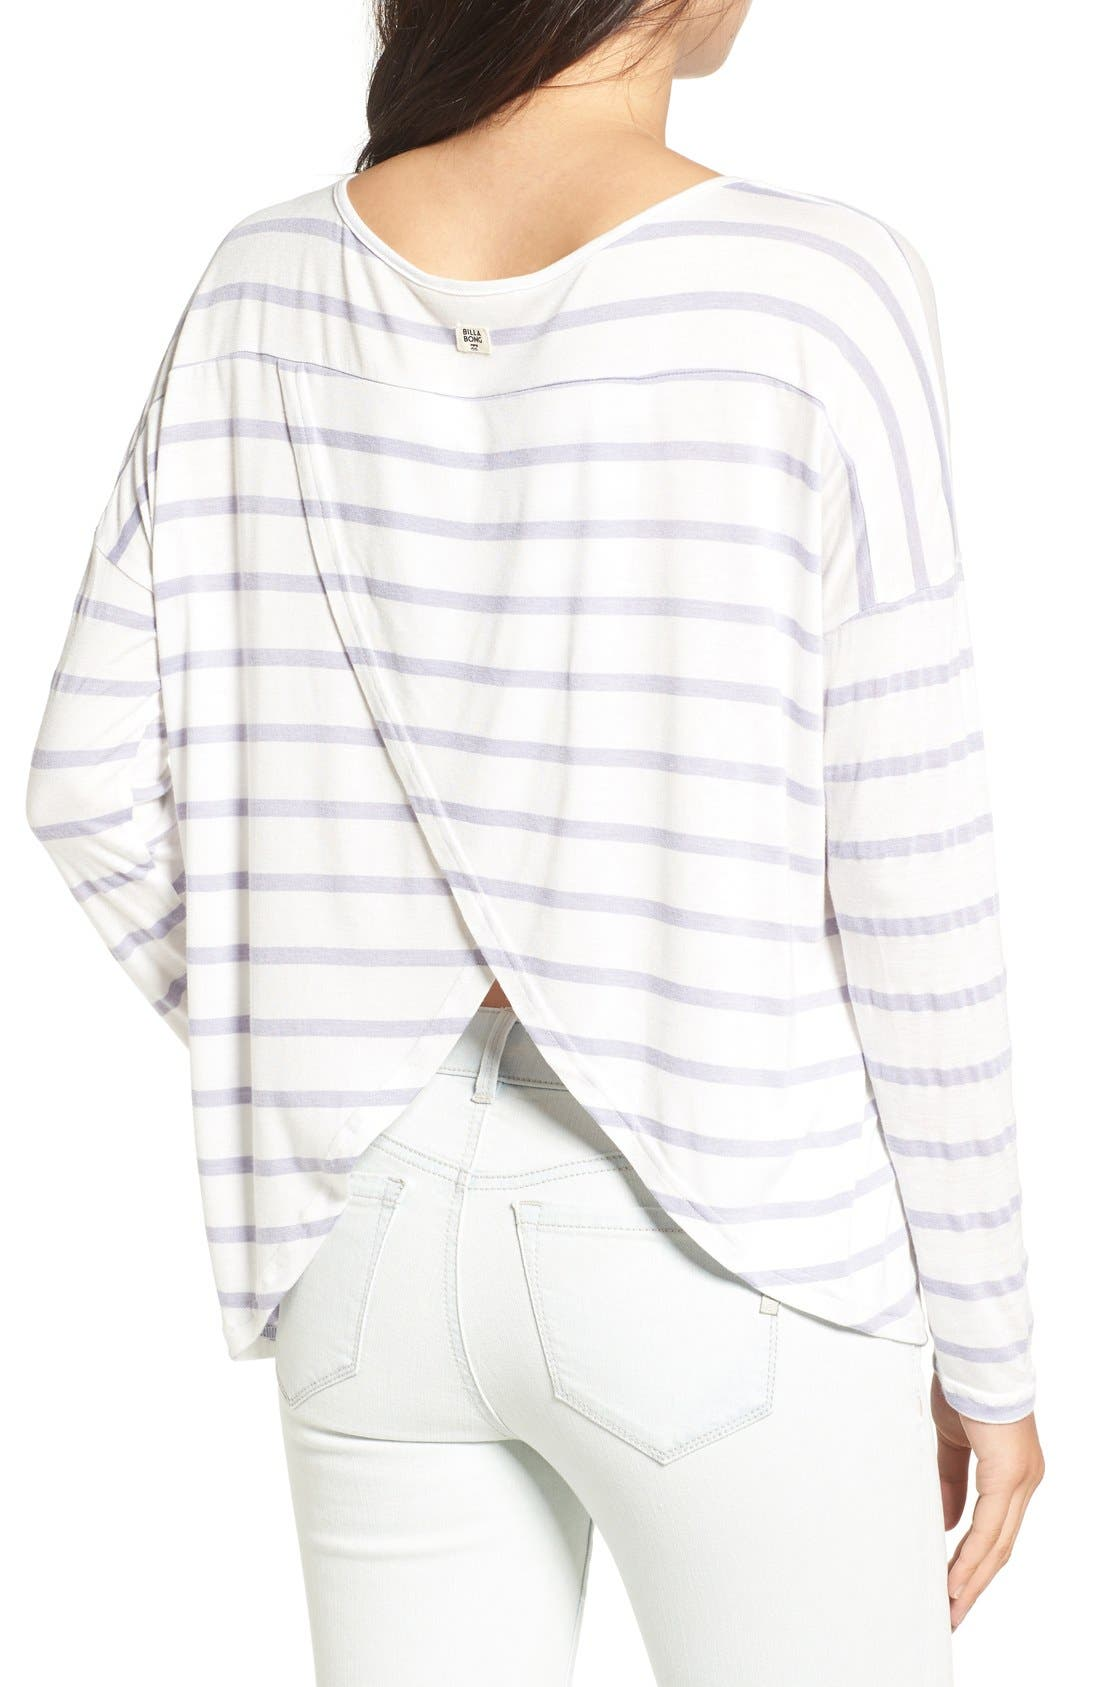 Alternate Image 2  - Billabong 'Change the World' Stripe Long Sleeve Tee